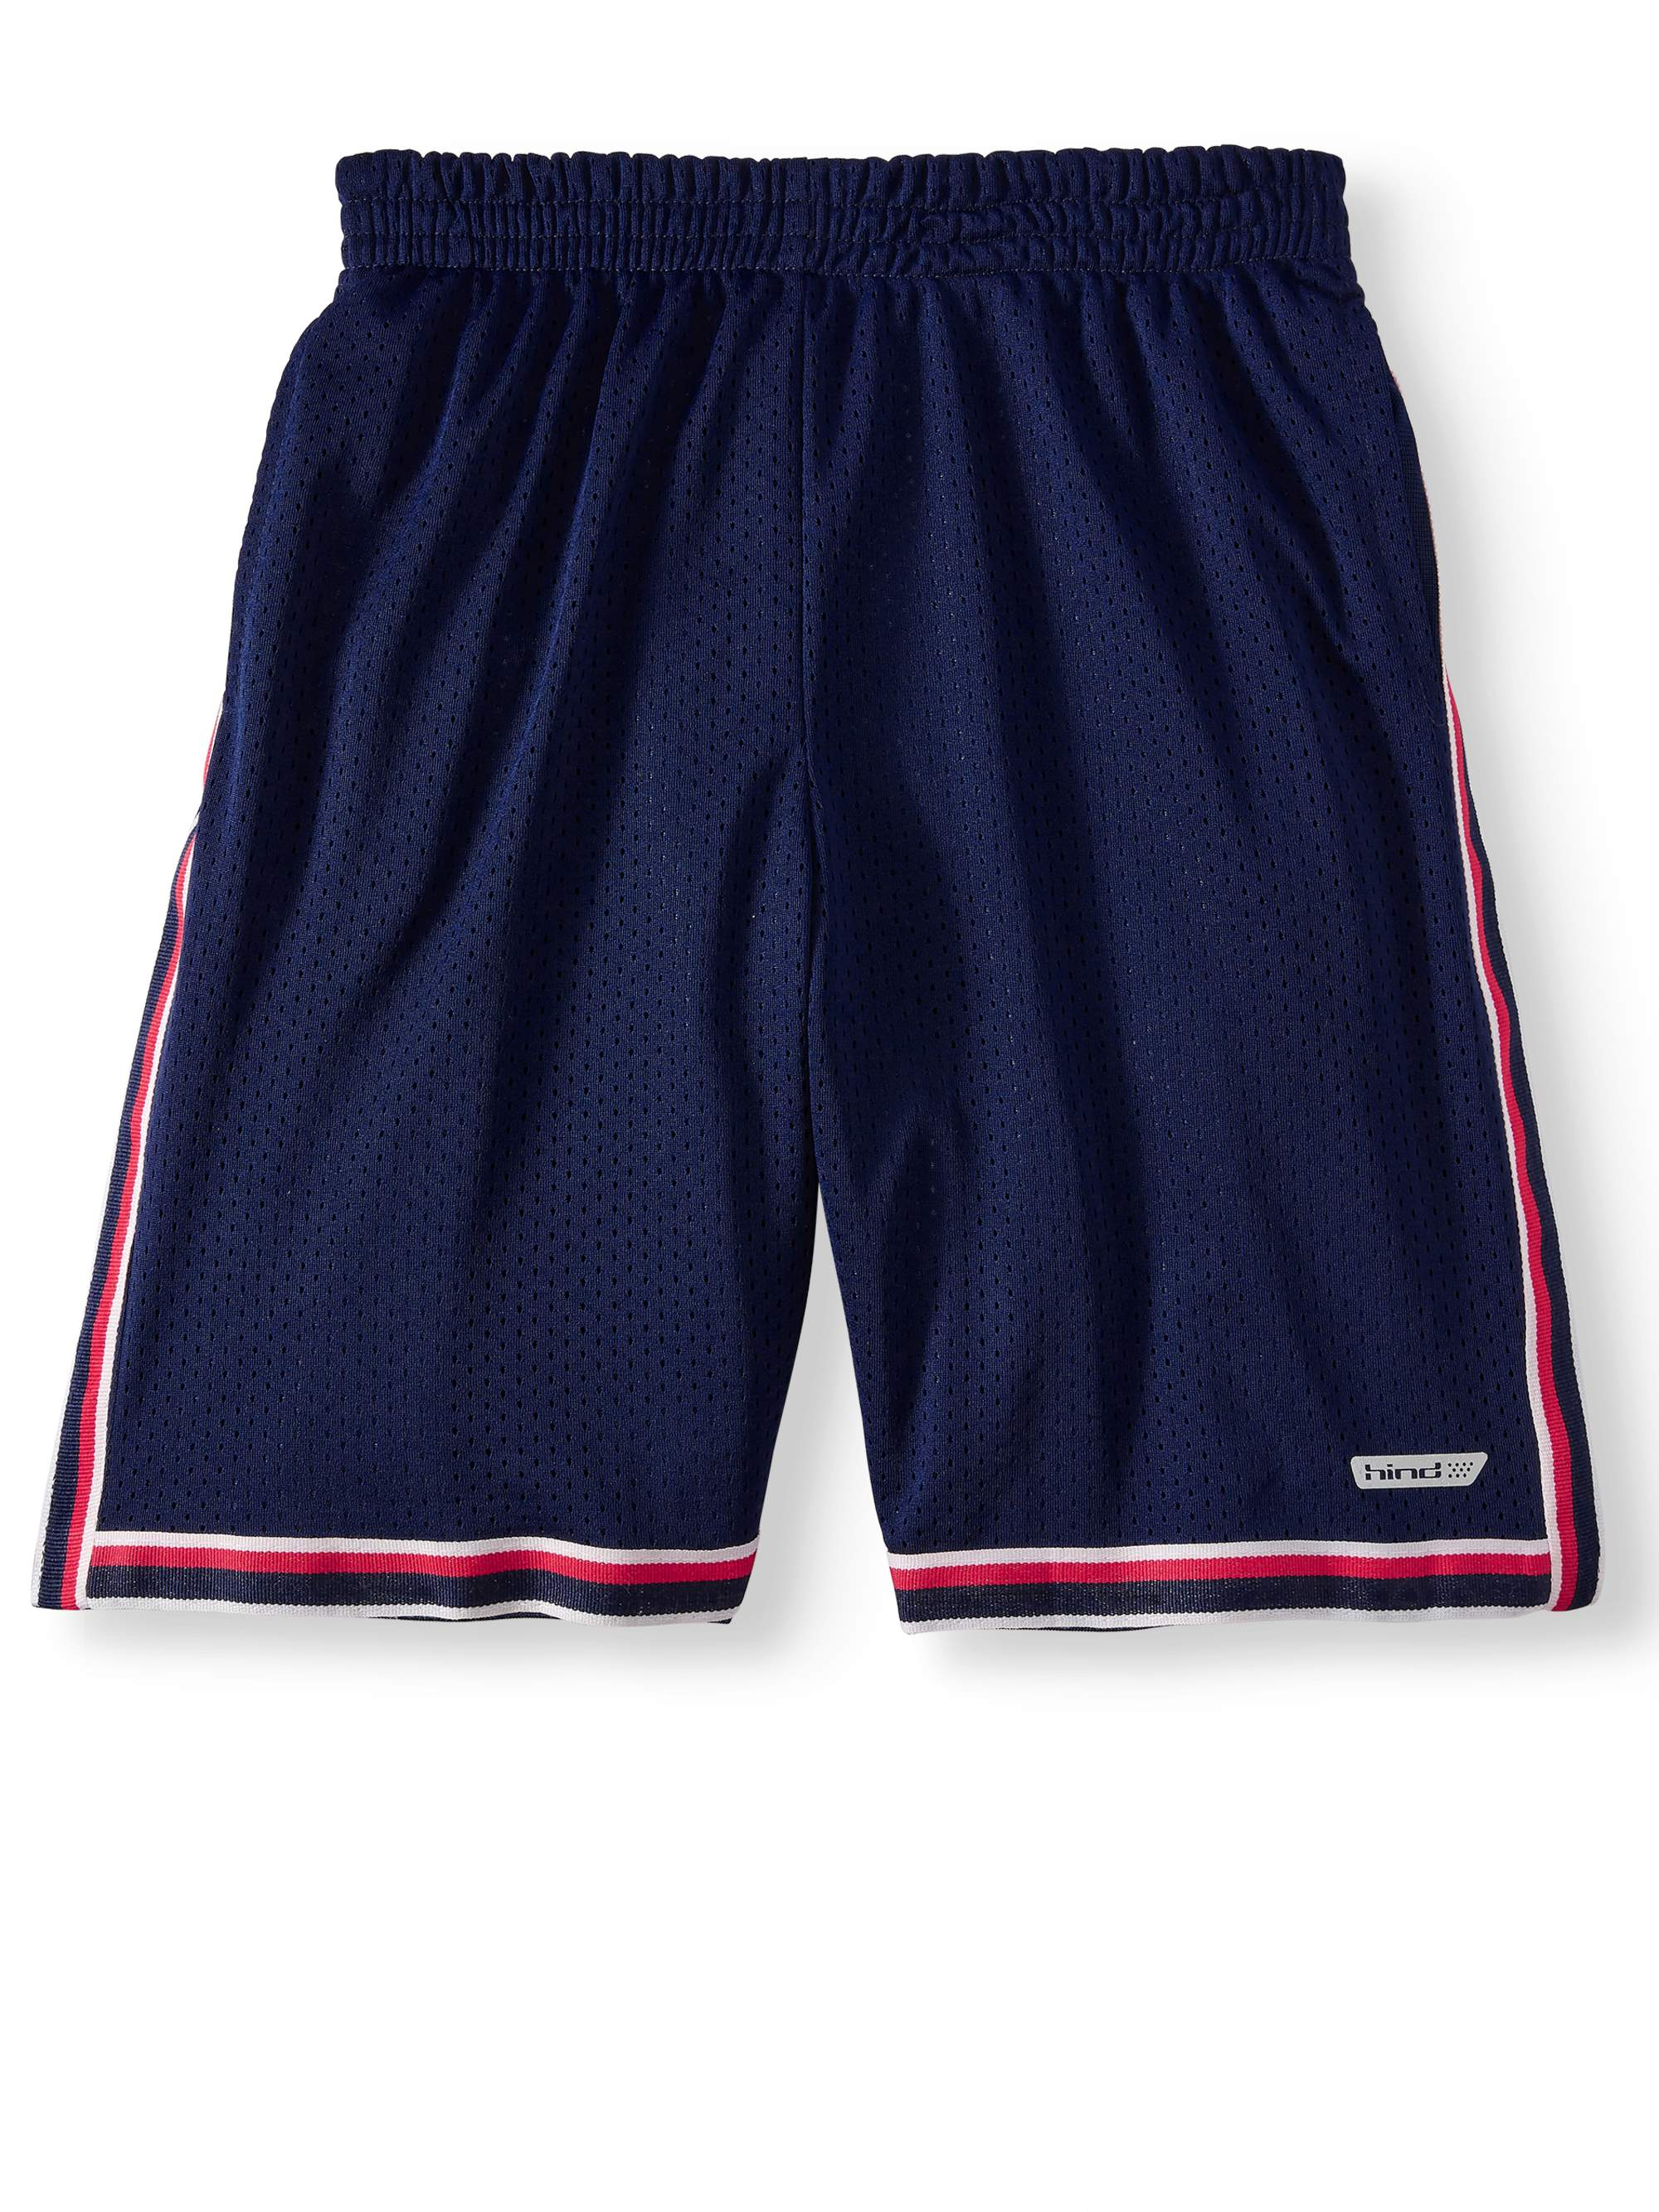 Pull-On Shorts with Bottom Taping (Little Boys & Big Boys)